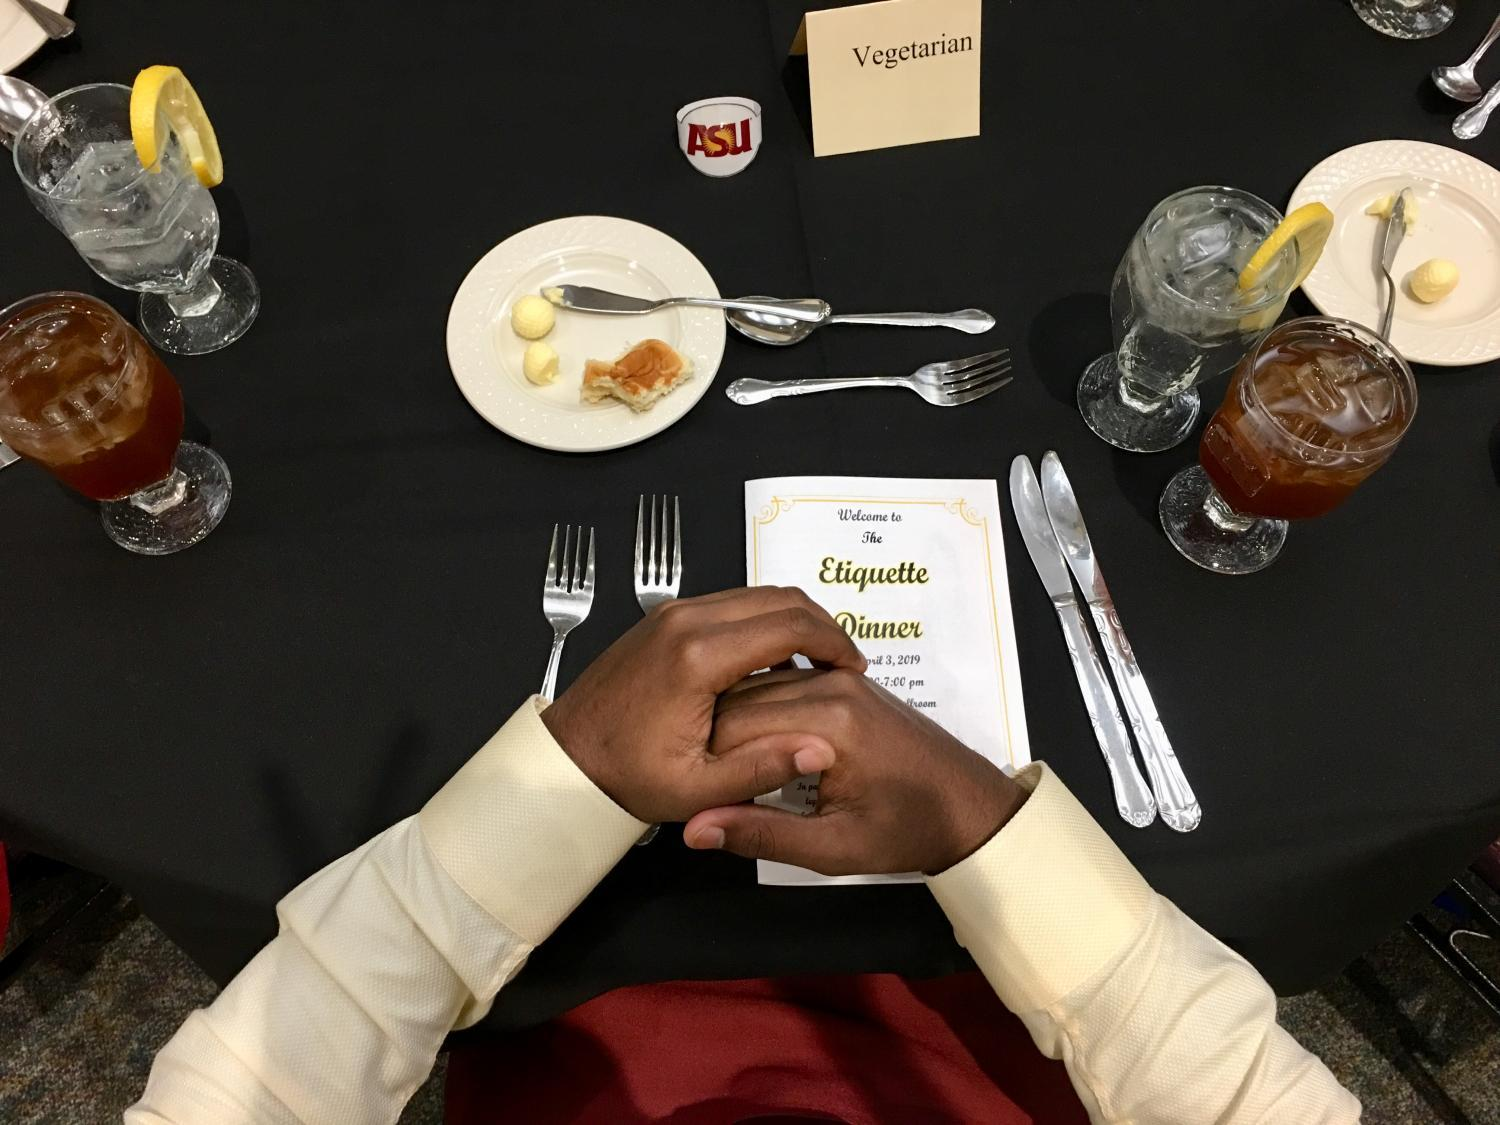 Etiquette 101: Why ASU Helps Students Master Table Manners